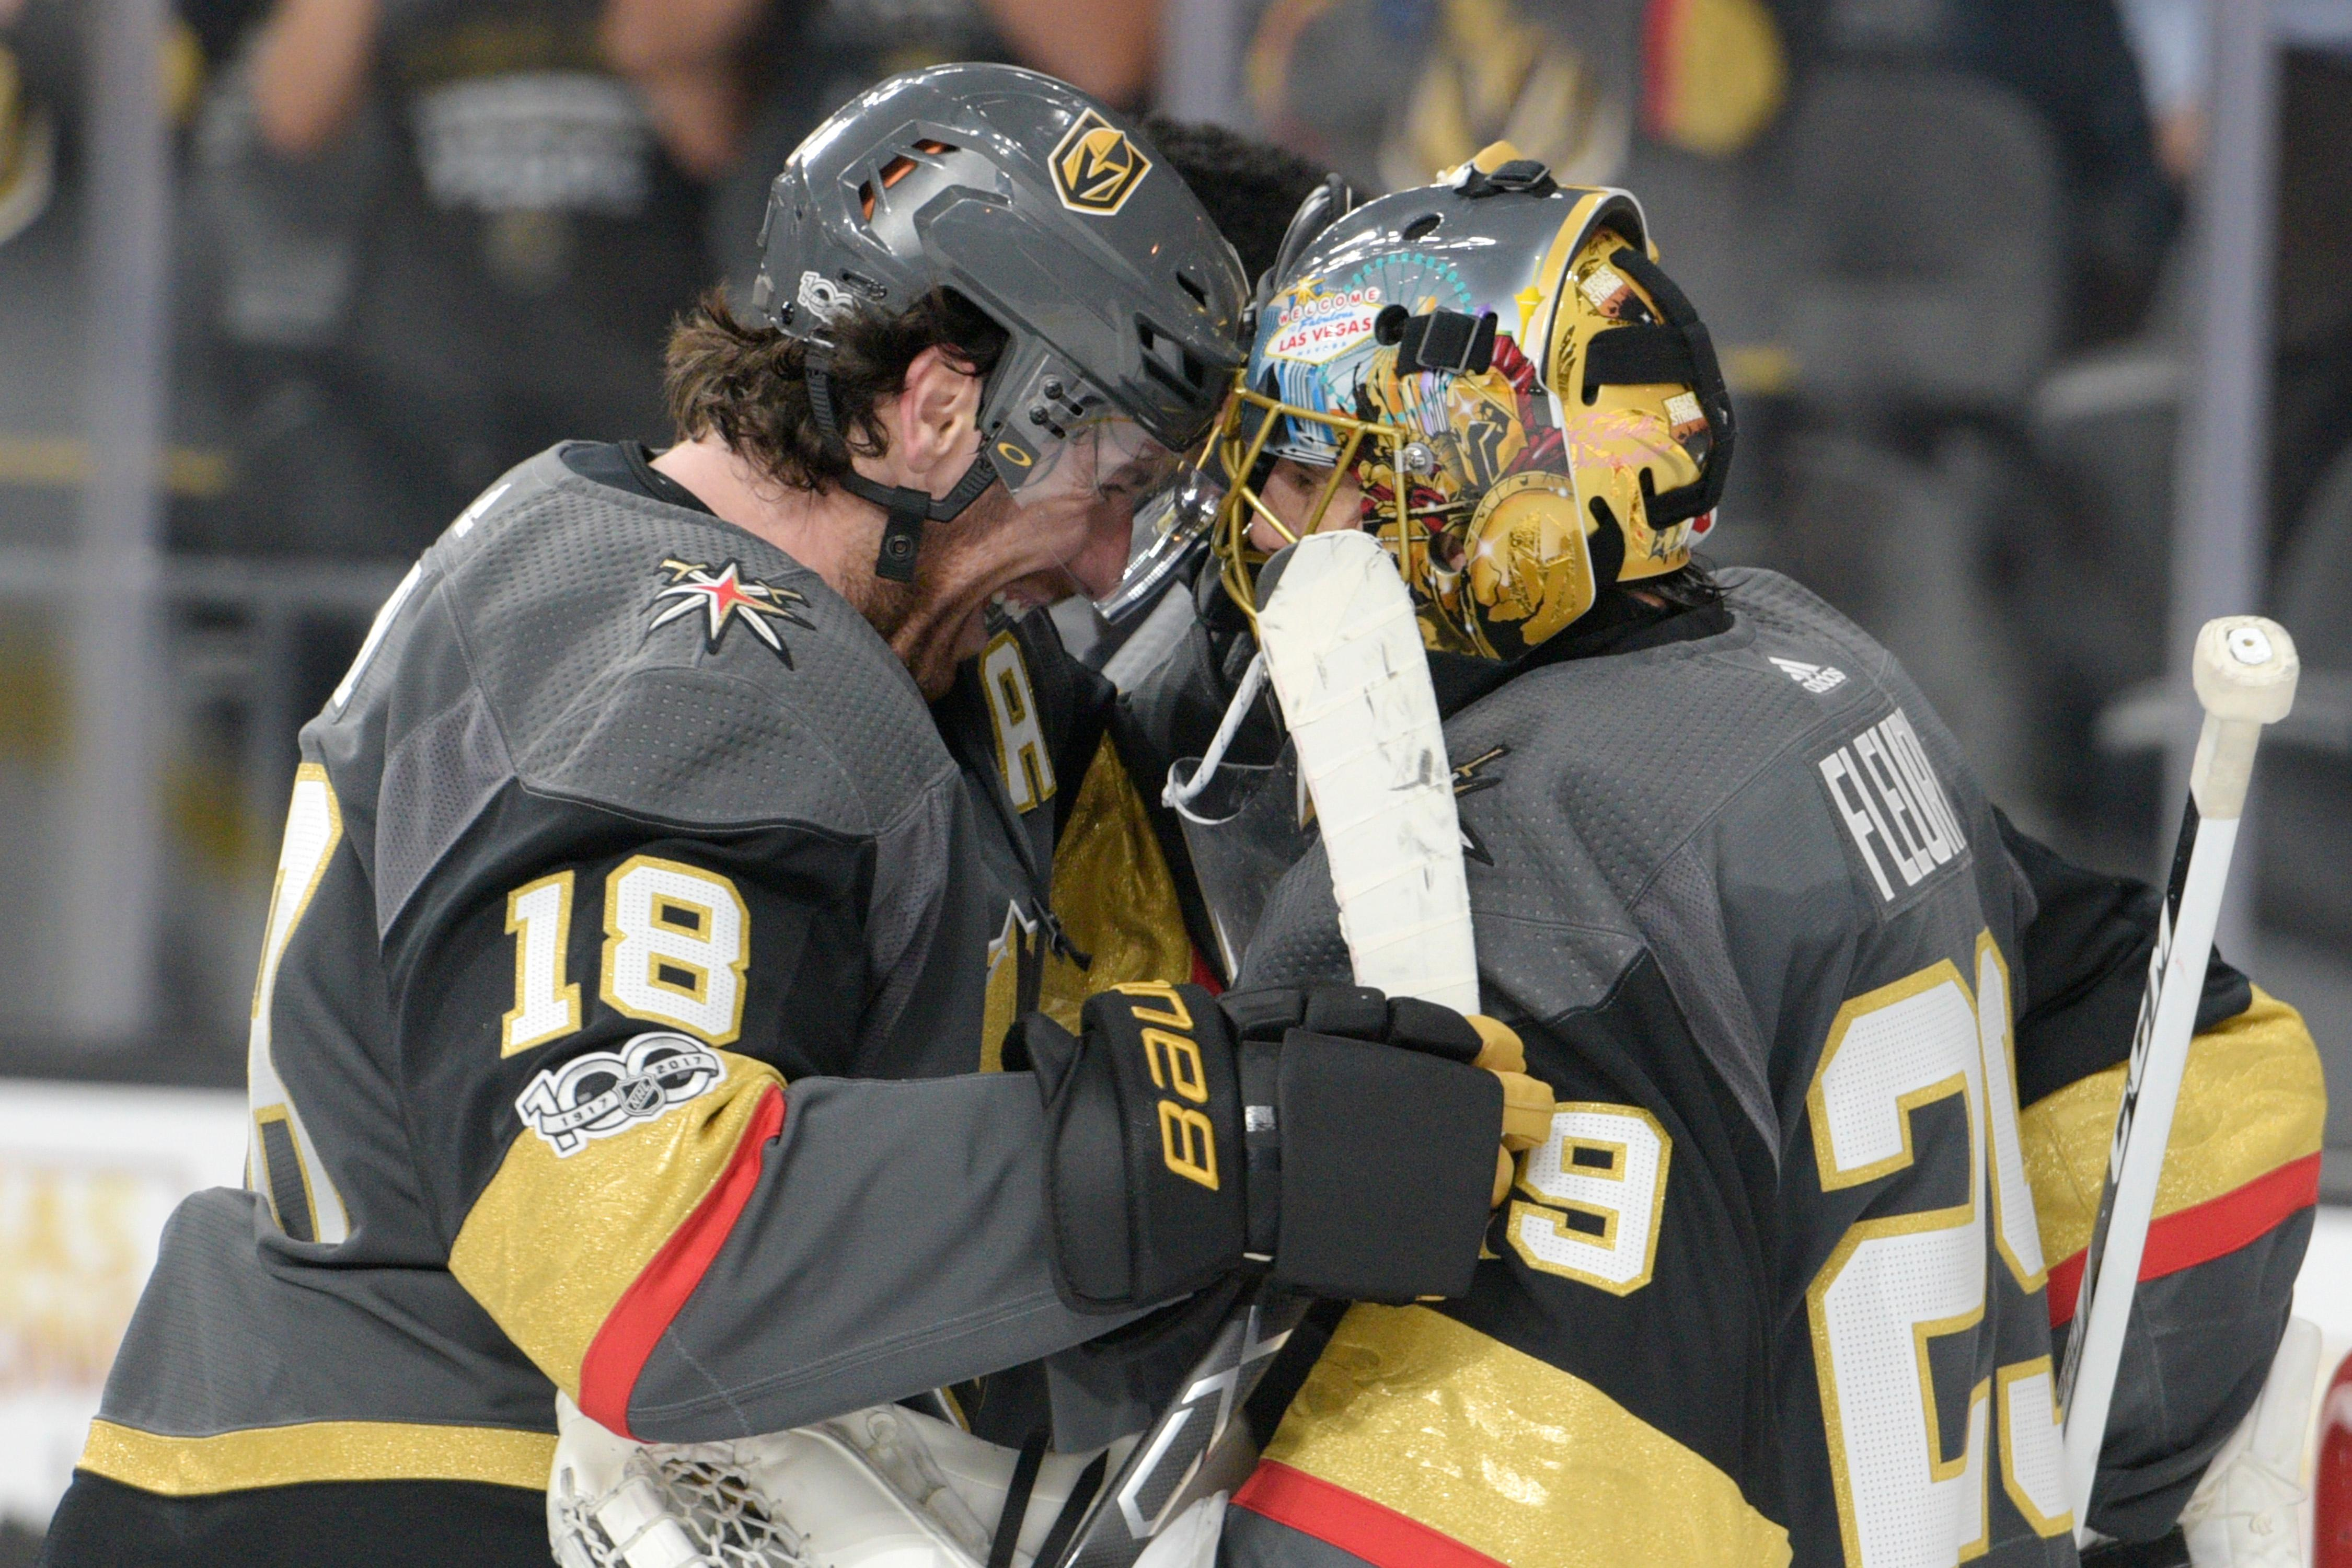 Vegas Golden Knights right wing James Neal (18) congratulates Vegas Golden Knights goalie Marc-Andre Fleury (29) after the Knights home opener Tuesday, Oct. 10, 2017, at the T-Mobile Arena. The Knights won 5-2 to extend their winning streak to 3-0. CREDIT: Sam Morris/Las Vegas News Bureau